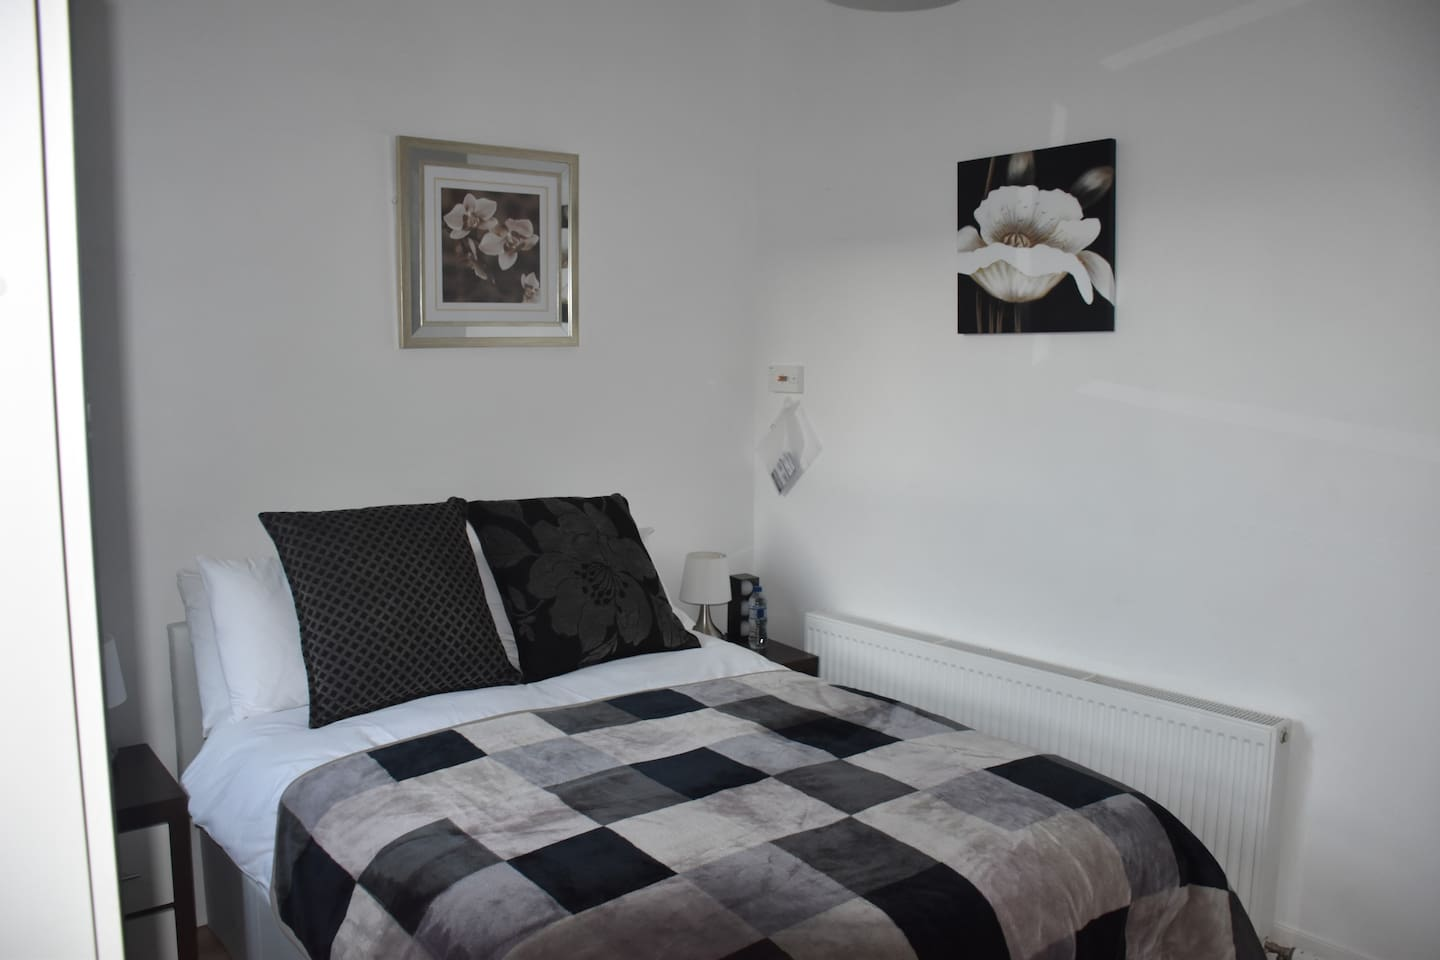 Clean and very comfortable double bed.